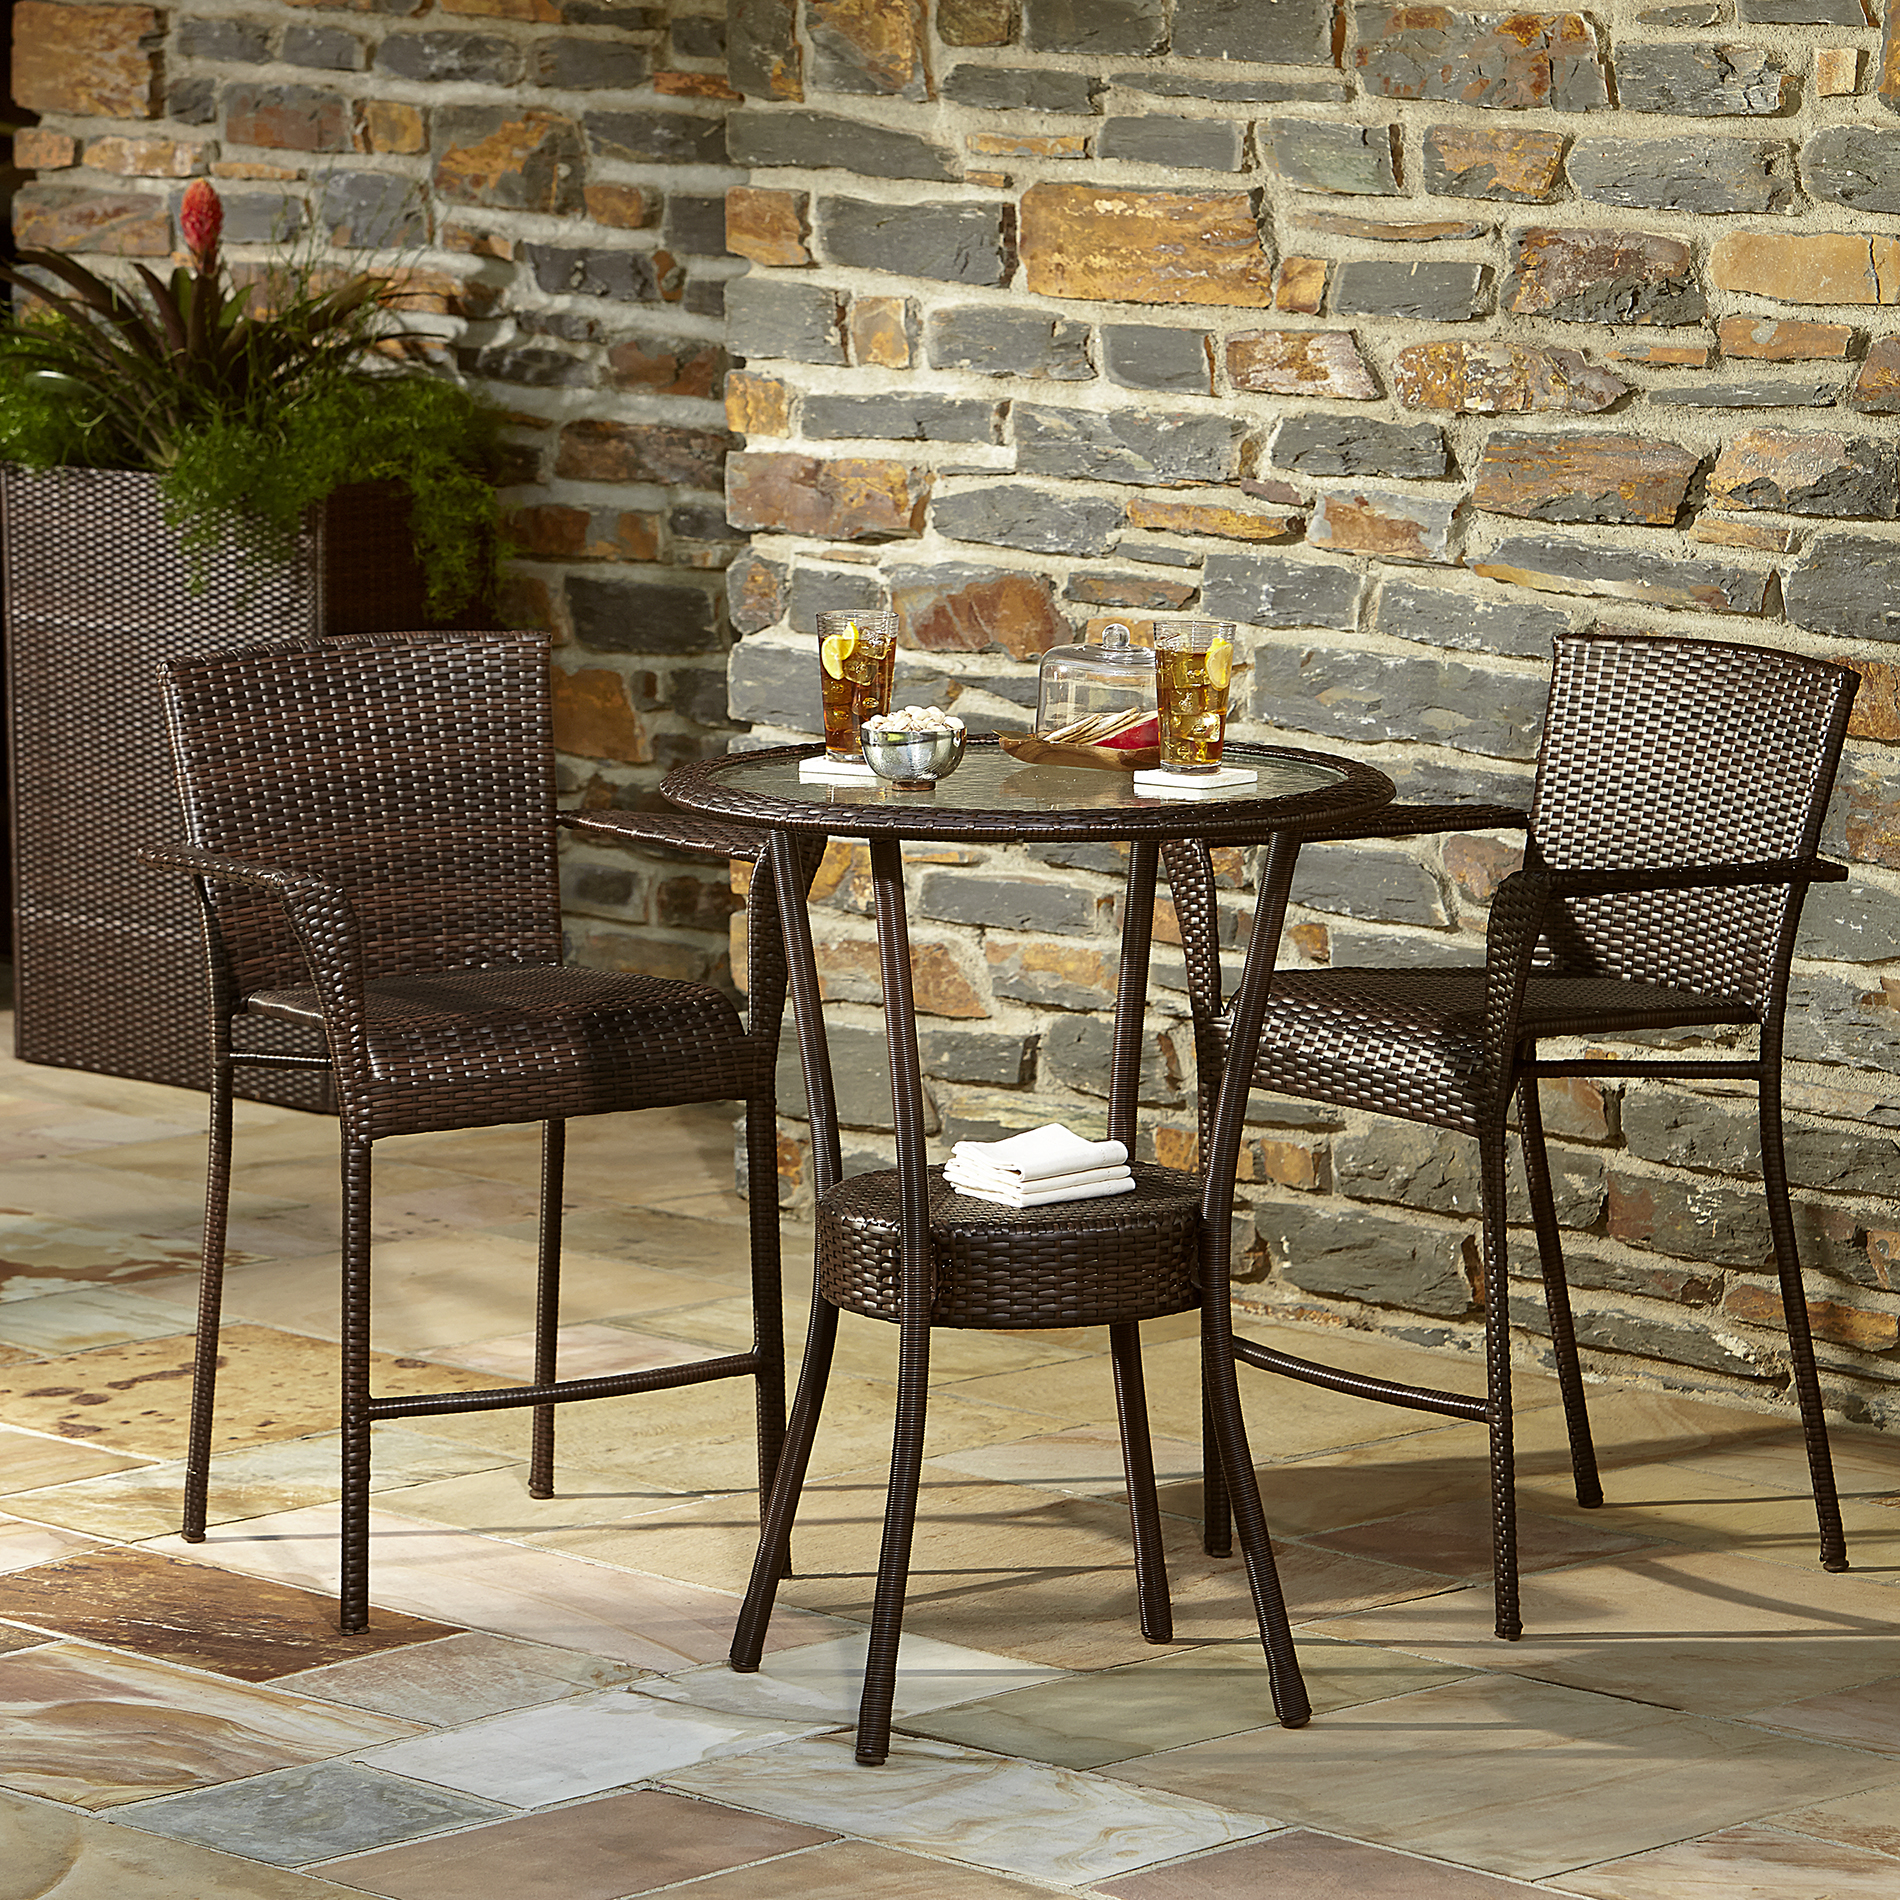 bistro table and chairs kmart chair with ottoman ty pennington style parkside 3 piece set limited